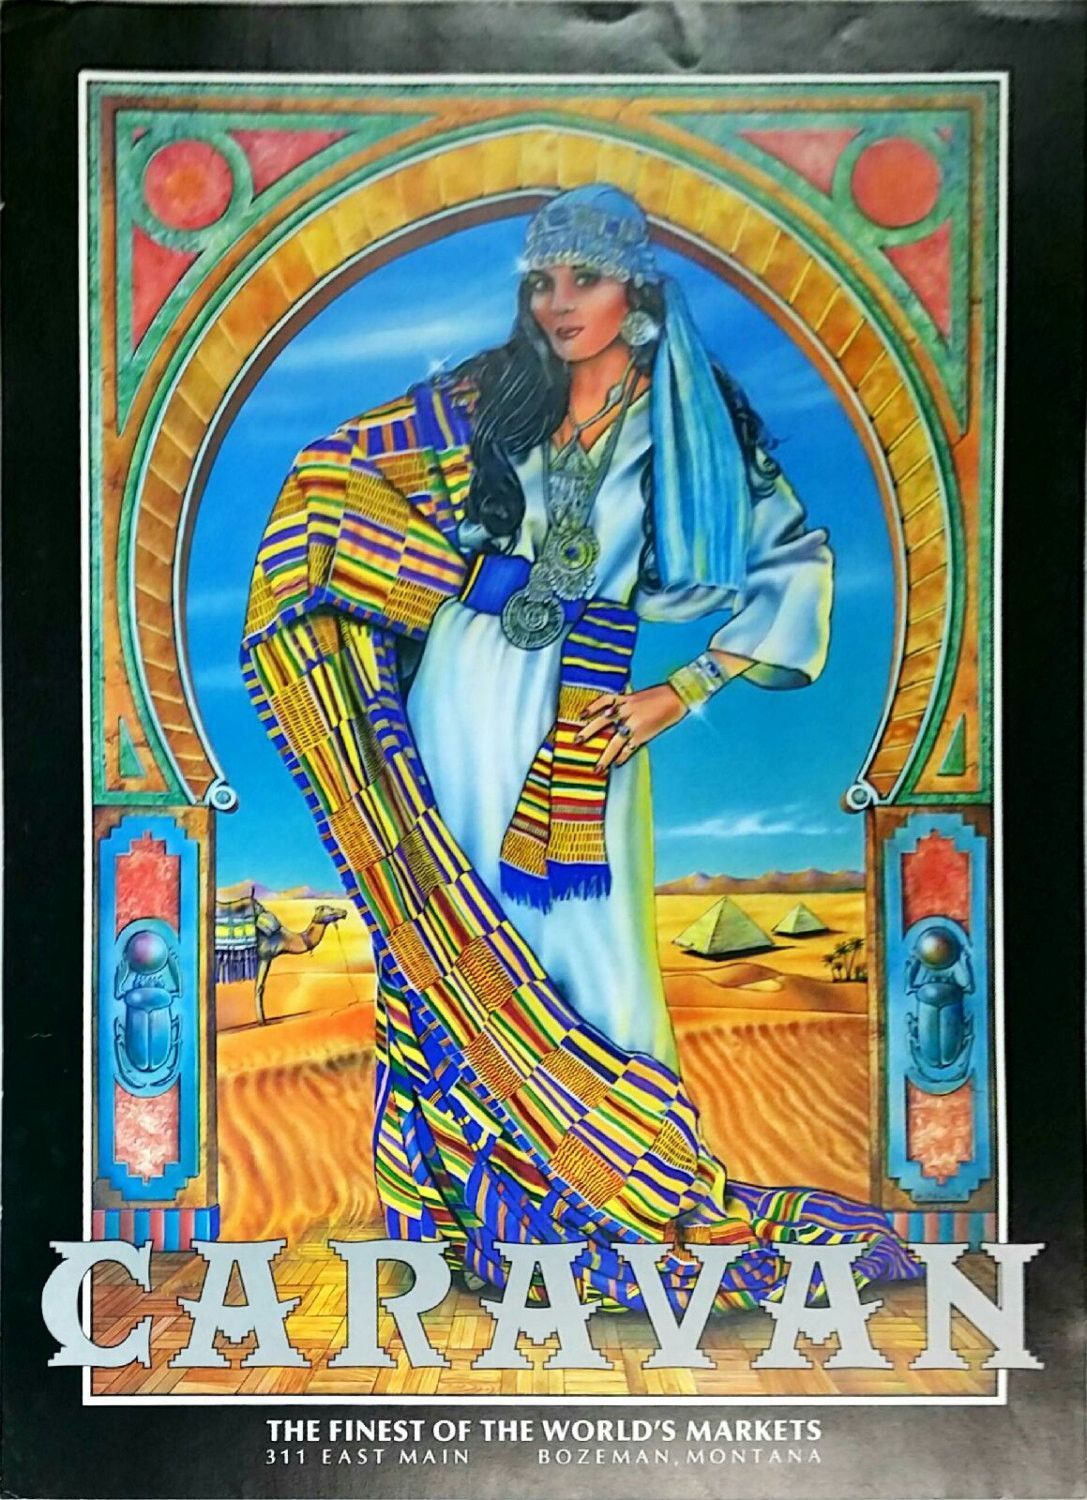 Caravan The Finest of The World's Markets with Gypsy Women Poster